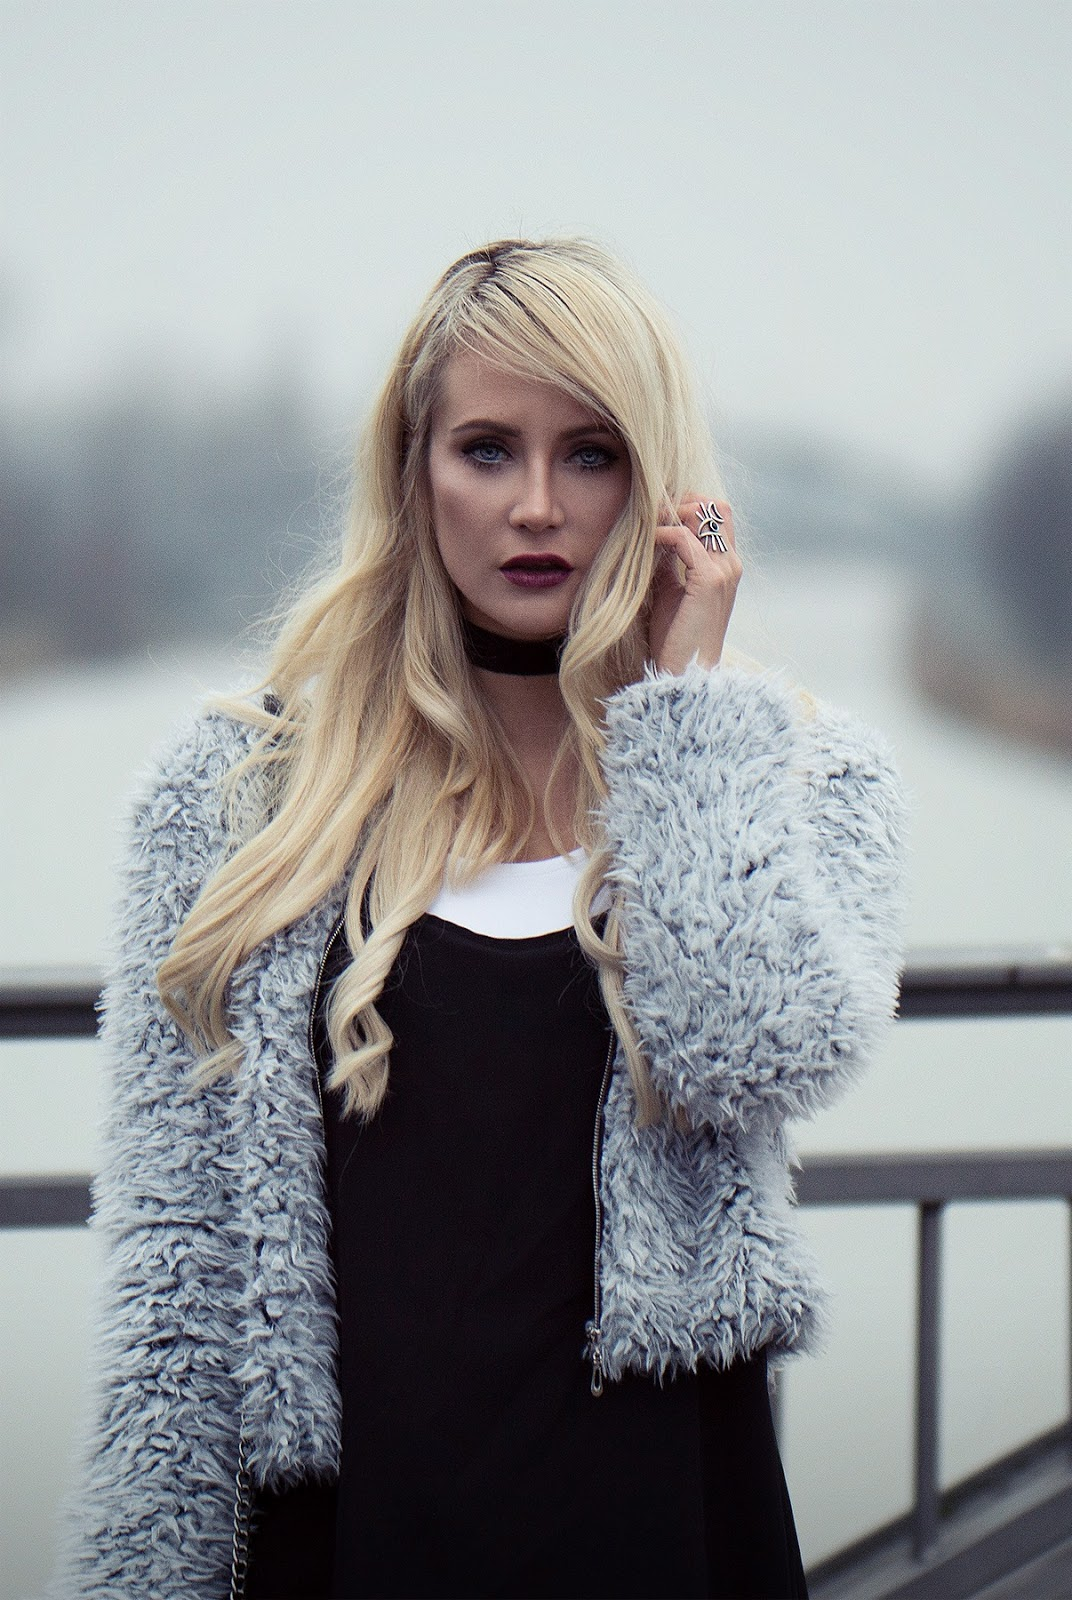 Ashblonde fashionblogger with velvet lips and fluffy jacket from sassyclassy